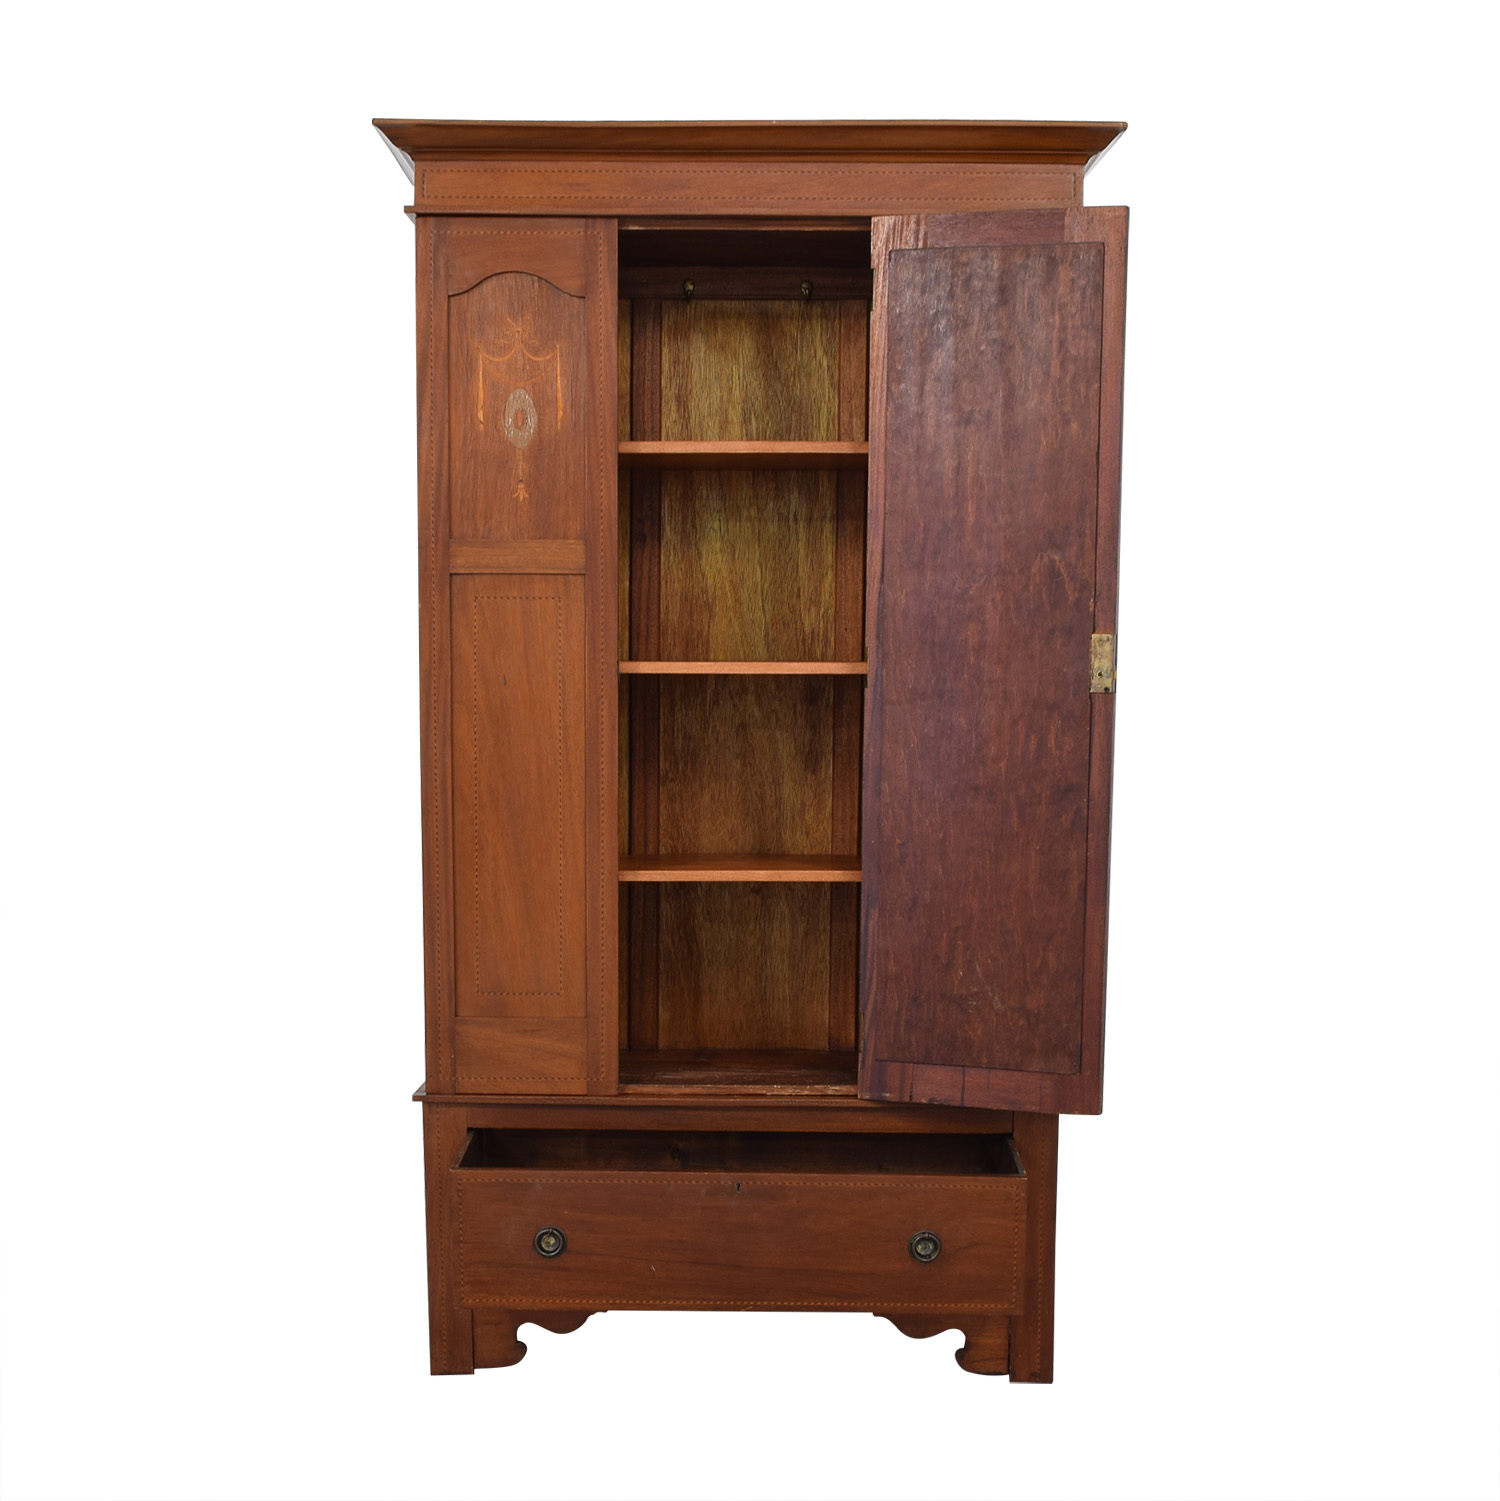 ABC Carpet & Home ABC Carpet & Home Armoire with Mirror second hand